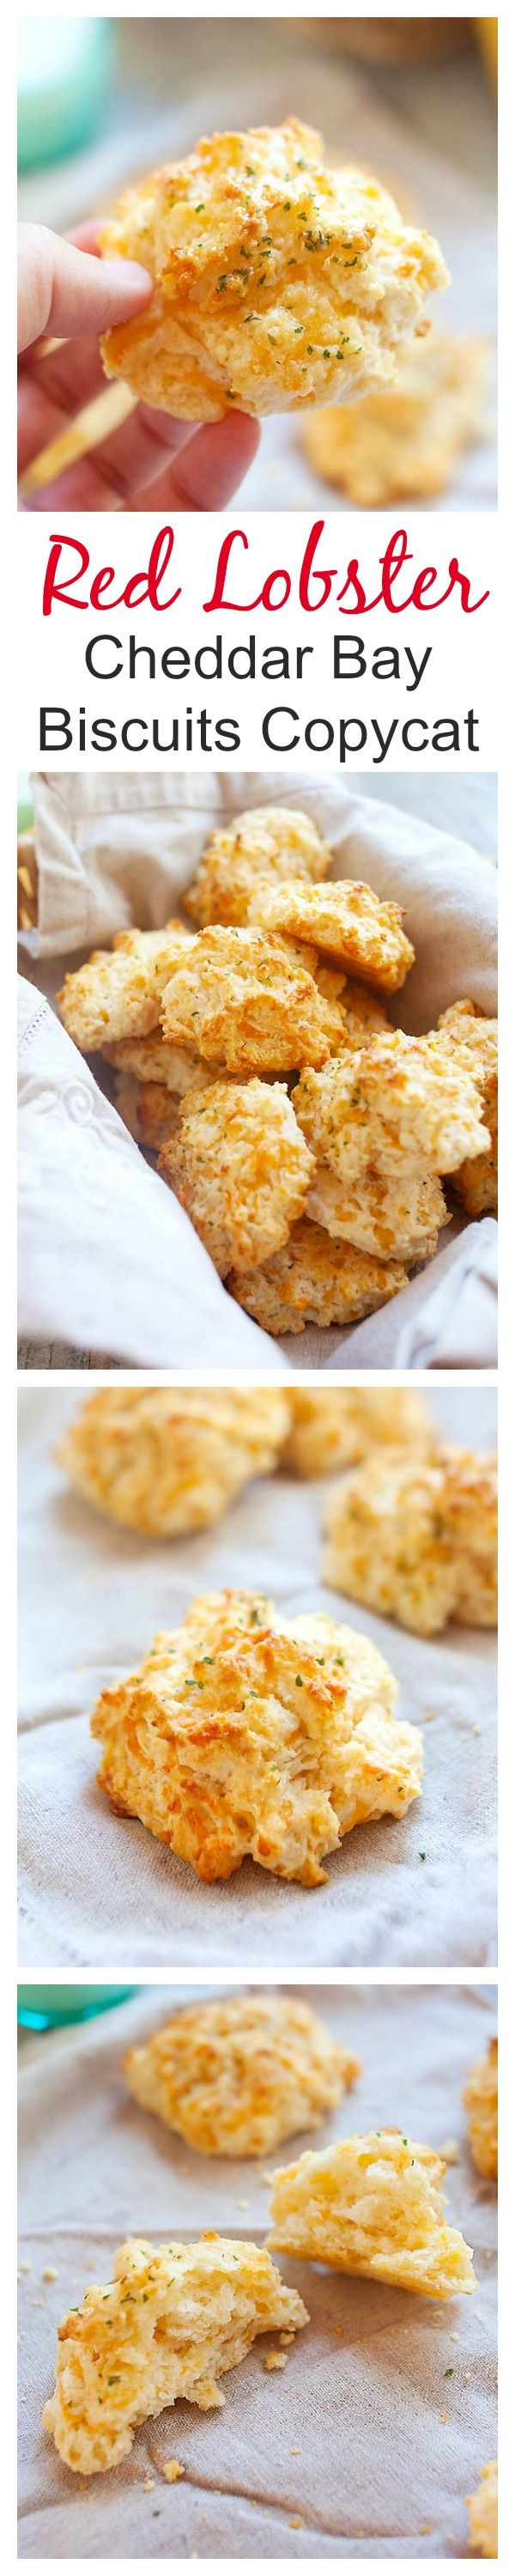 ... cheddar bay biscuits. Crumbly, cheesy, and the best biscuits ever